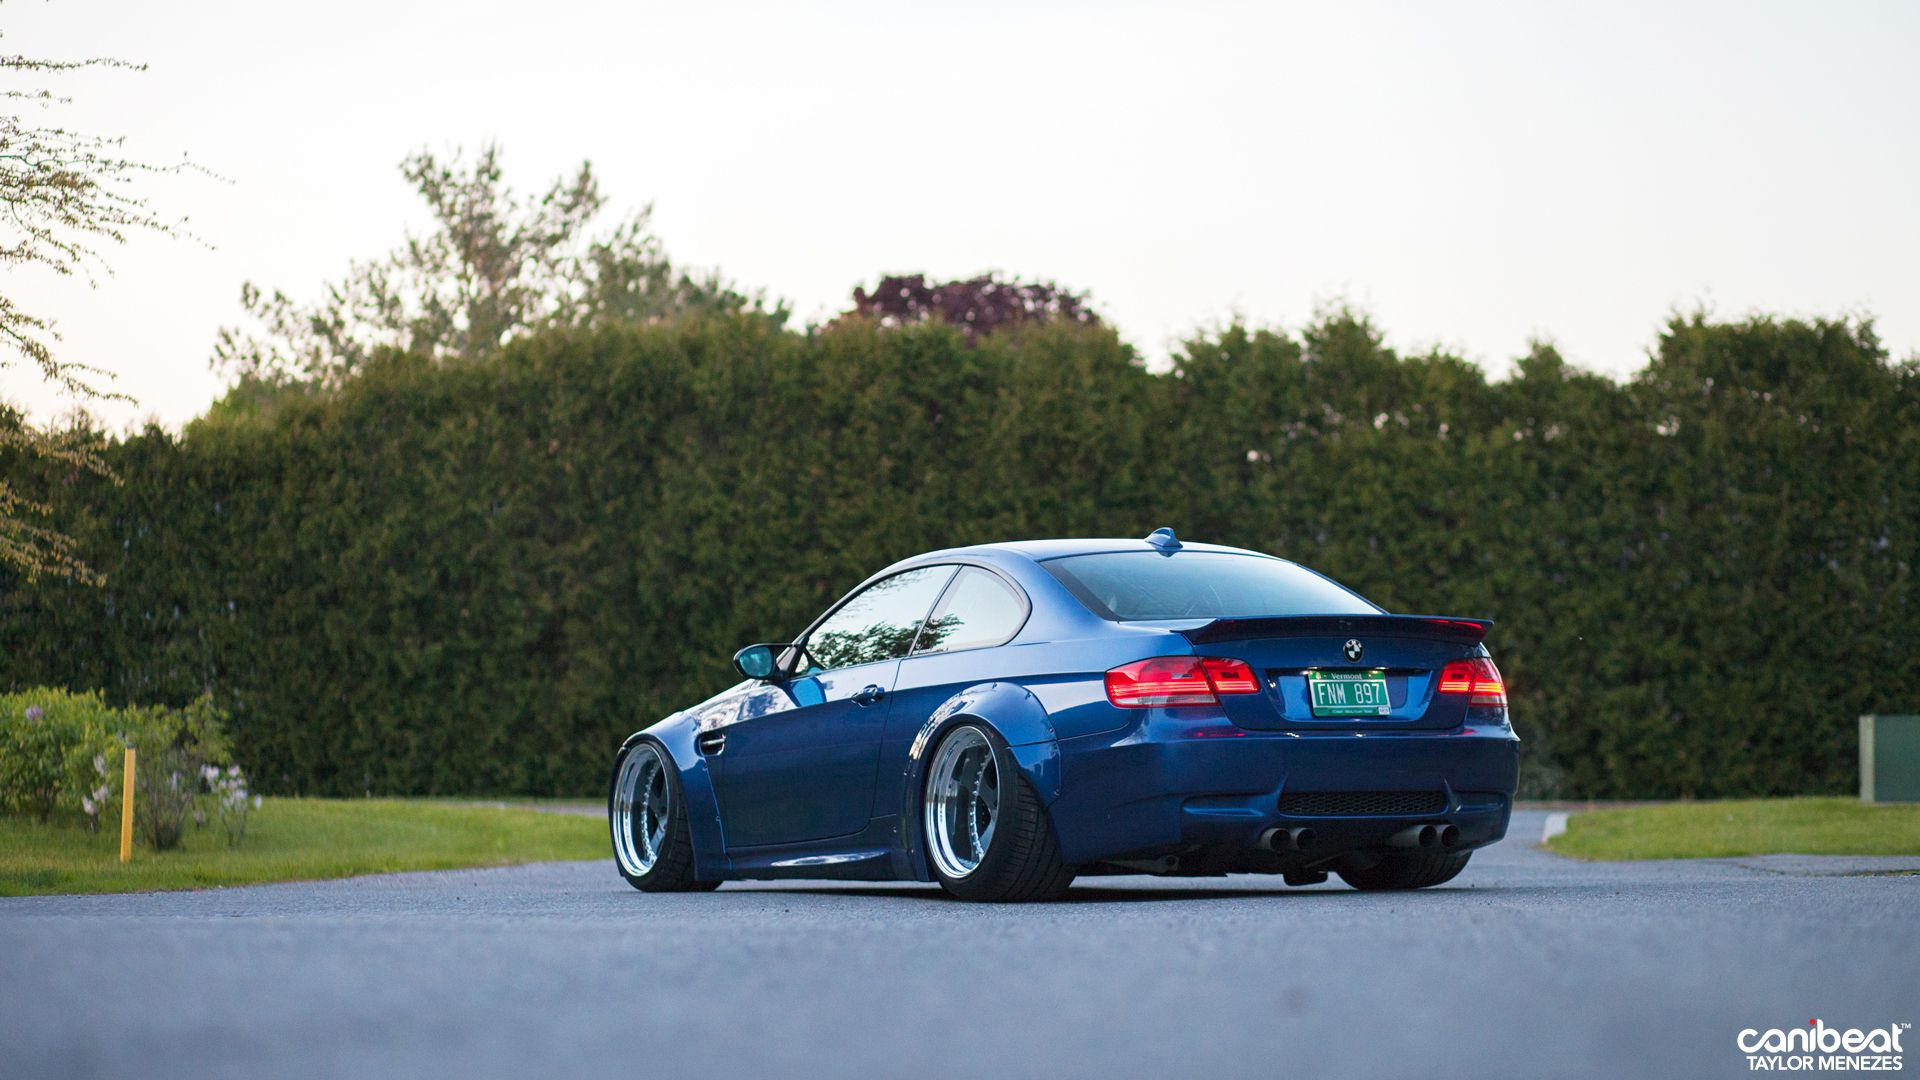 BMW 335i XDrive  Stanced Cars  Pinterest  BMW and Cars